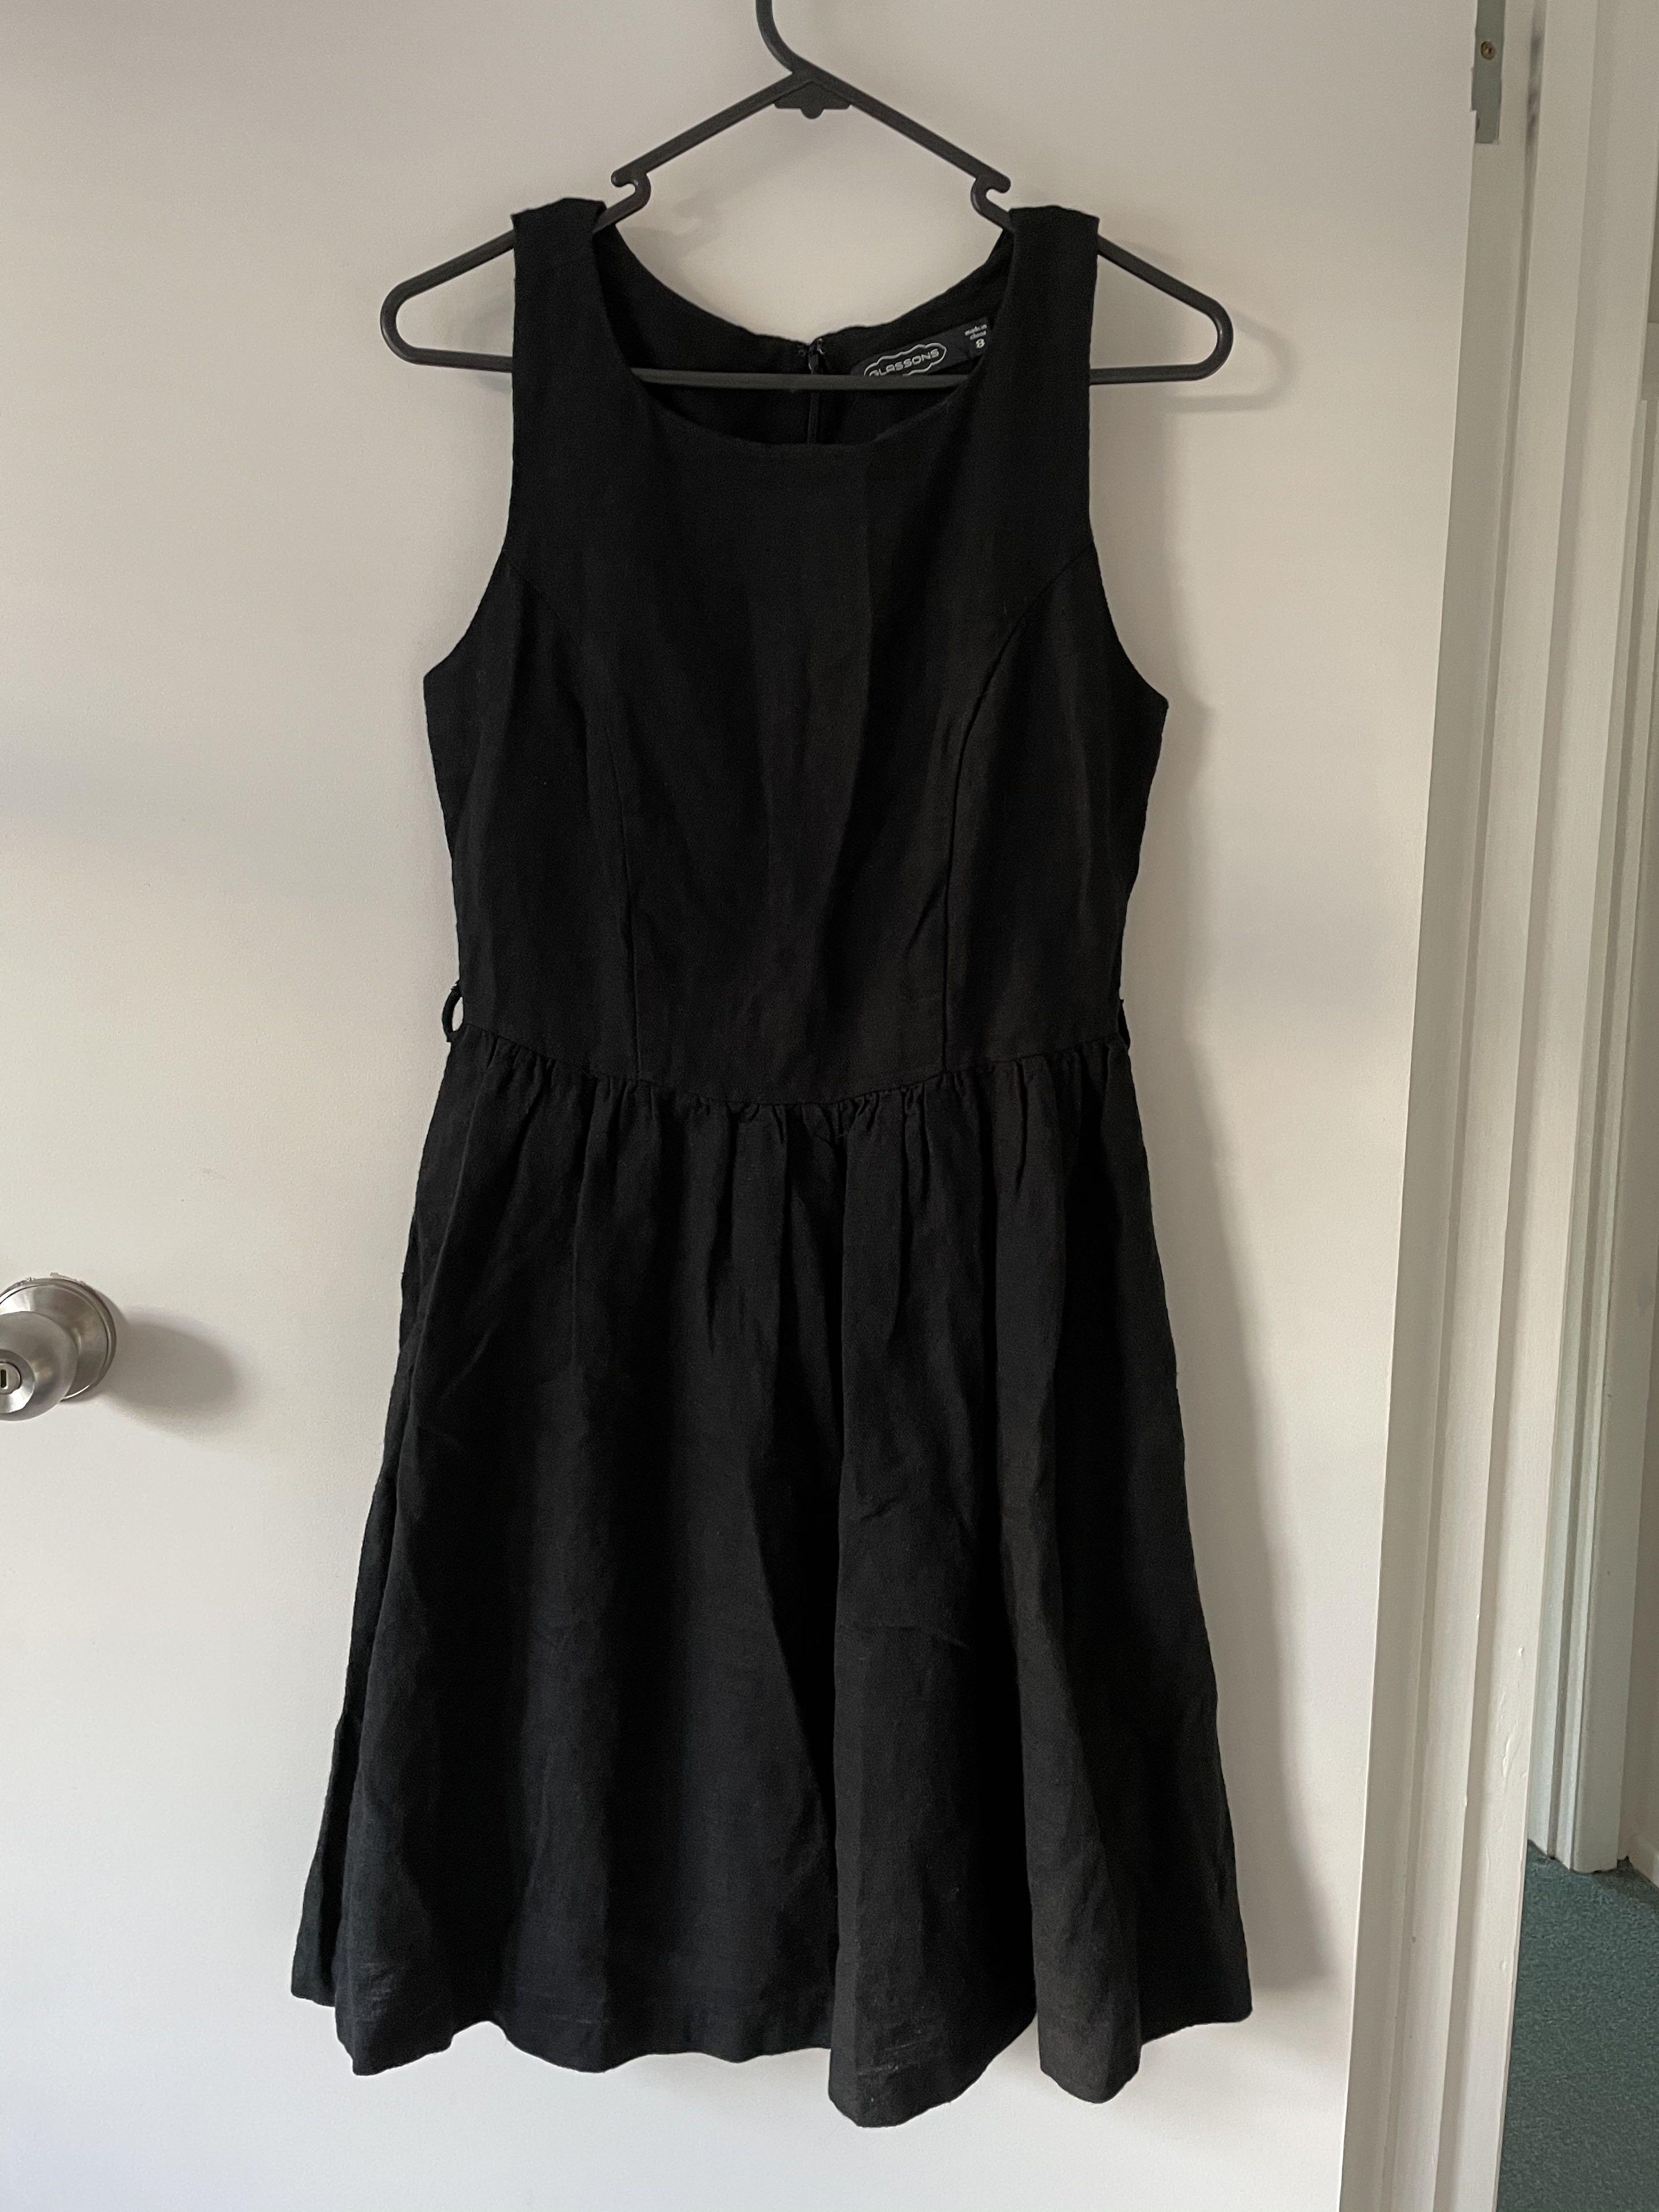 Glassons Dress with Belt Loops